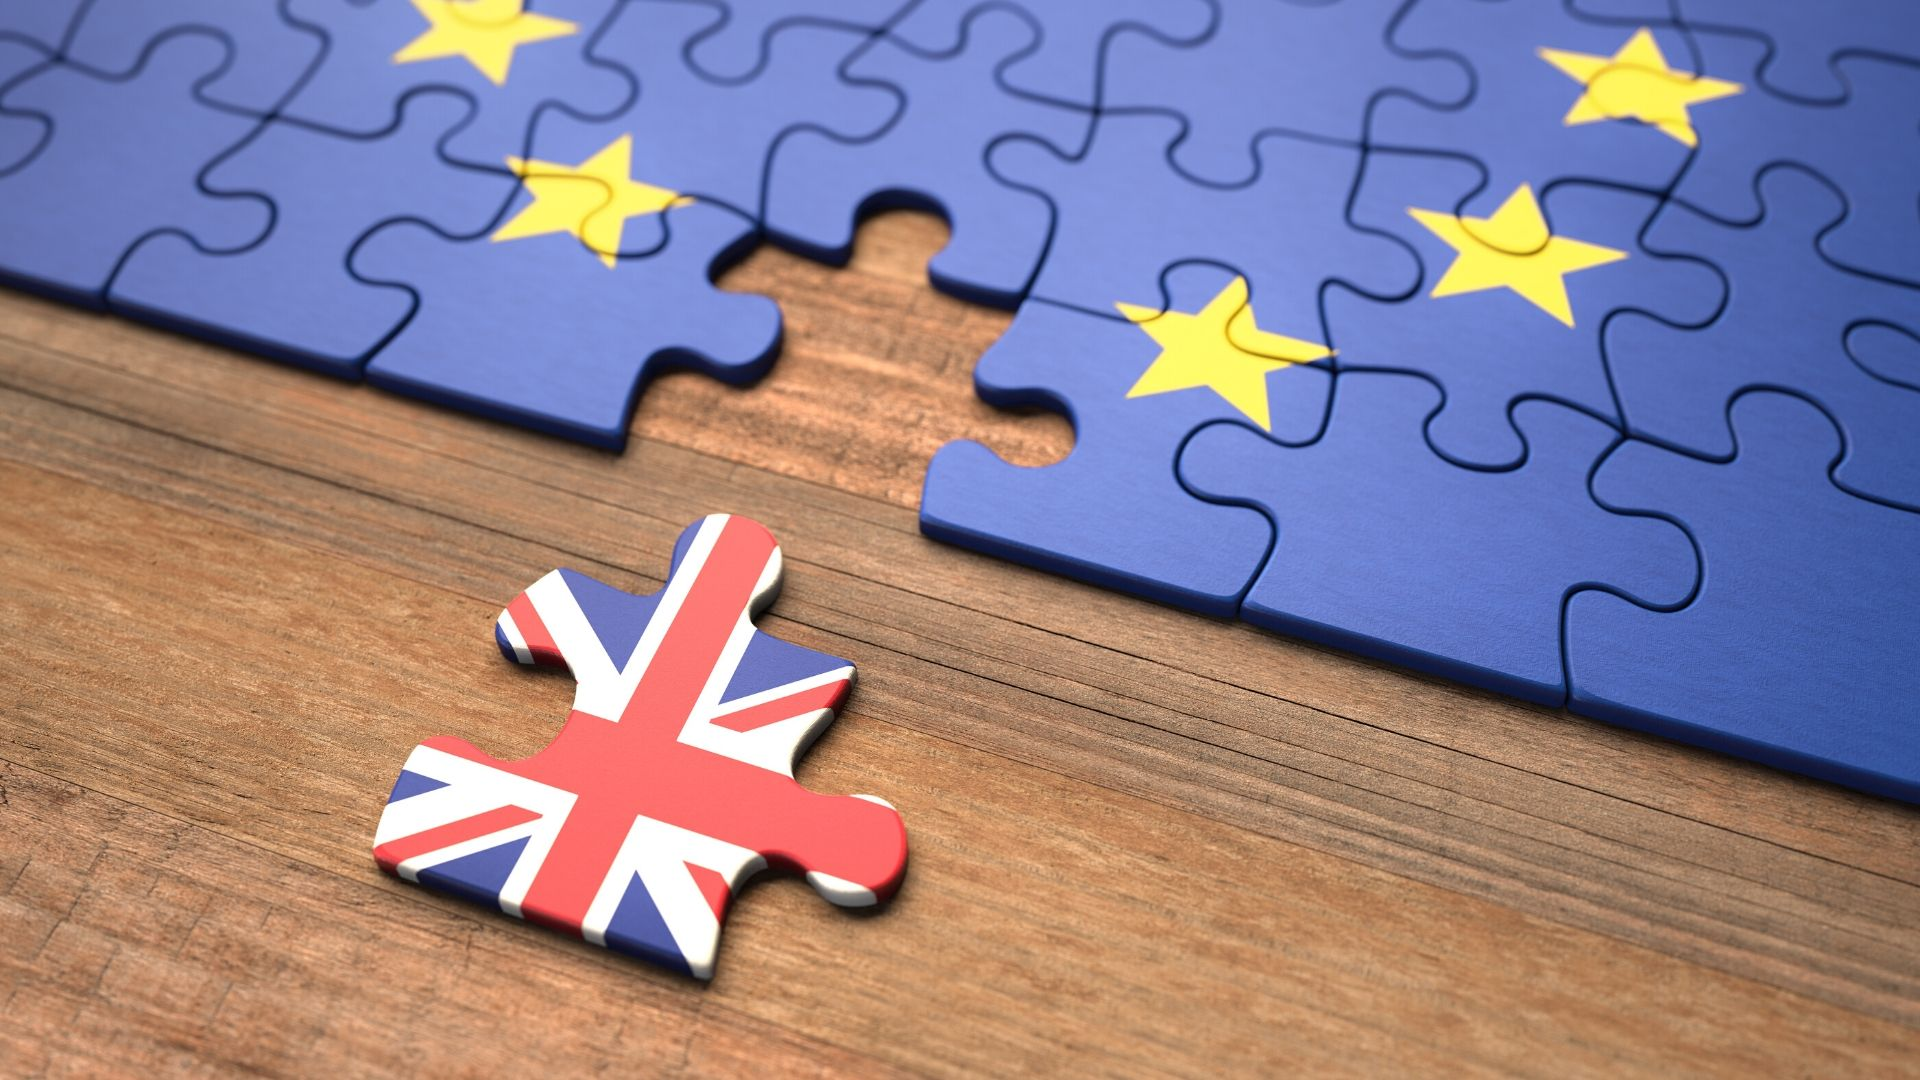 eu flag as a jigsaw with one piece missing that is the union jack flag